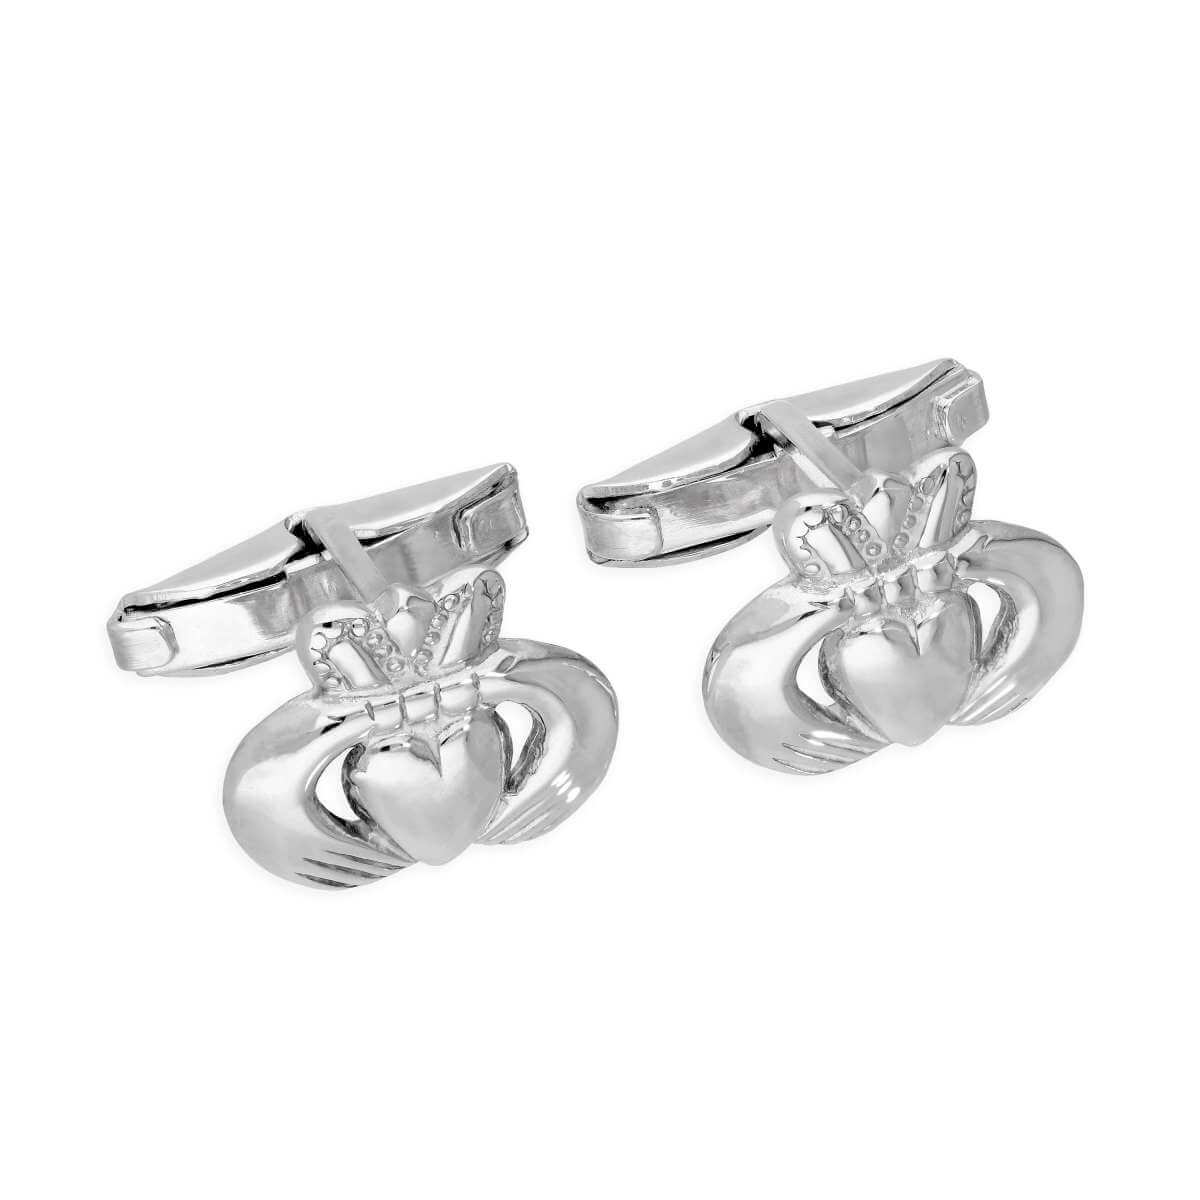 Sterling Silver Claddagh Swivel Back Cufflinks